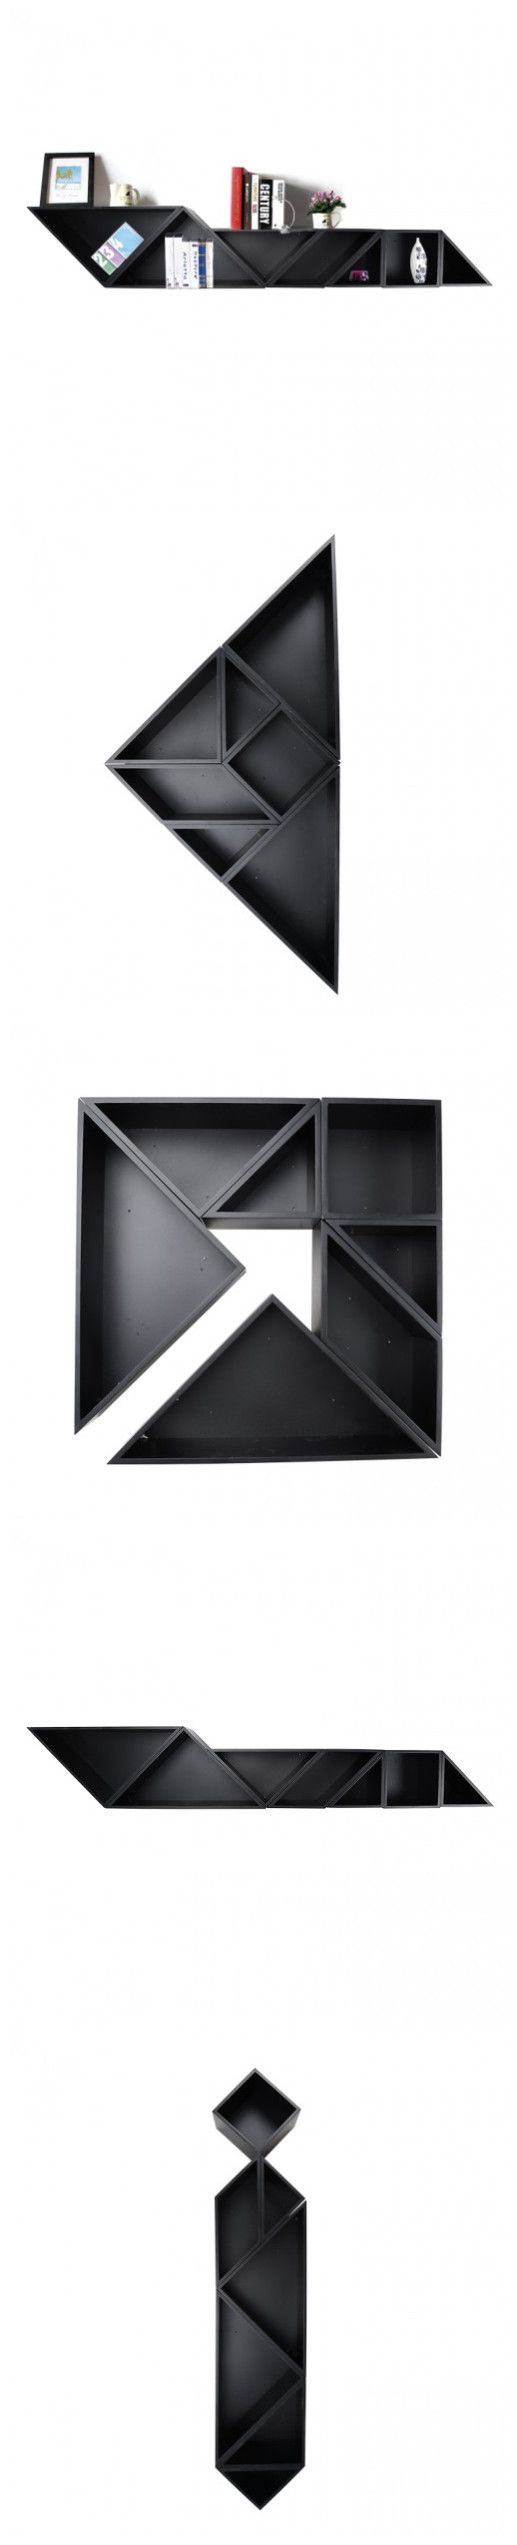 """I am seriously impressed!! """"Tangram"""" Wooden Display Shelf: we can select different Tangram style shapes for our home  http://www.zosomart.com/home-living/furniture/tangram-wooden-wall-shelf-wooden-storage-display-rack-set-of-7-black.html"""